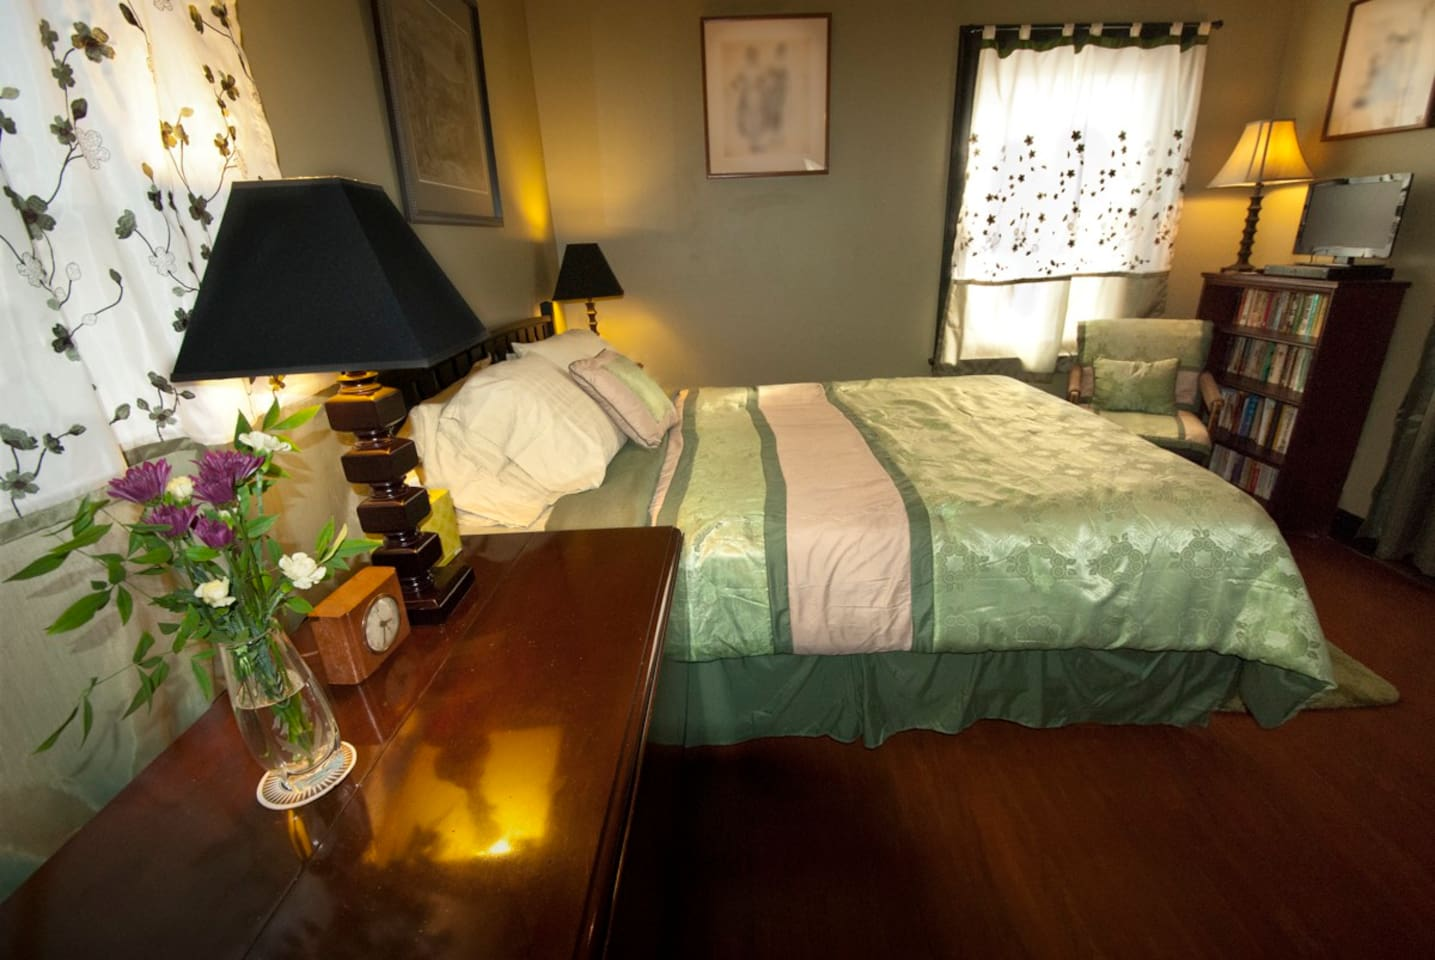 This spacious (11'x15') and cozy guest room, with new queen-size bed, is ready for your visit.